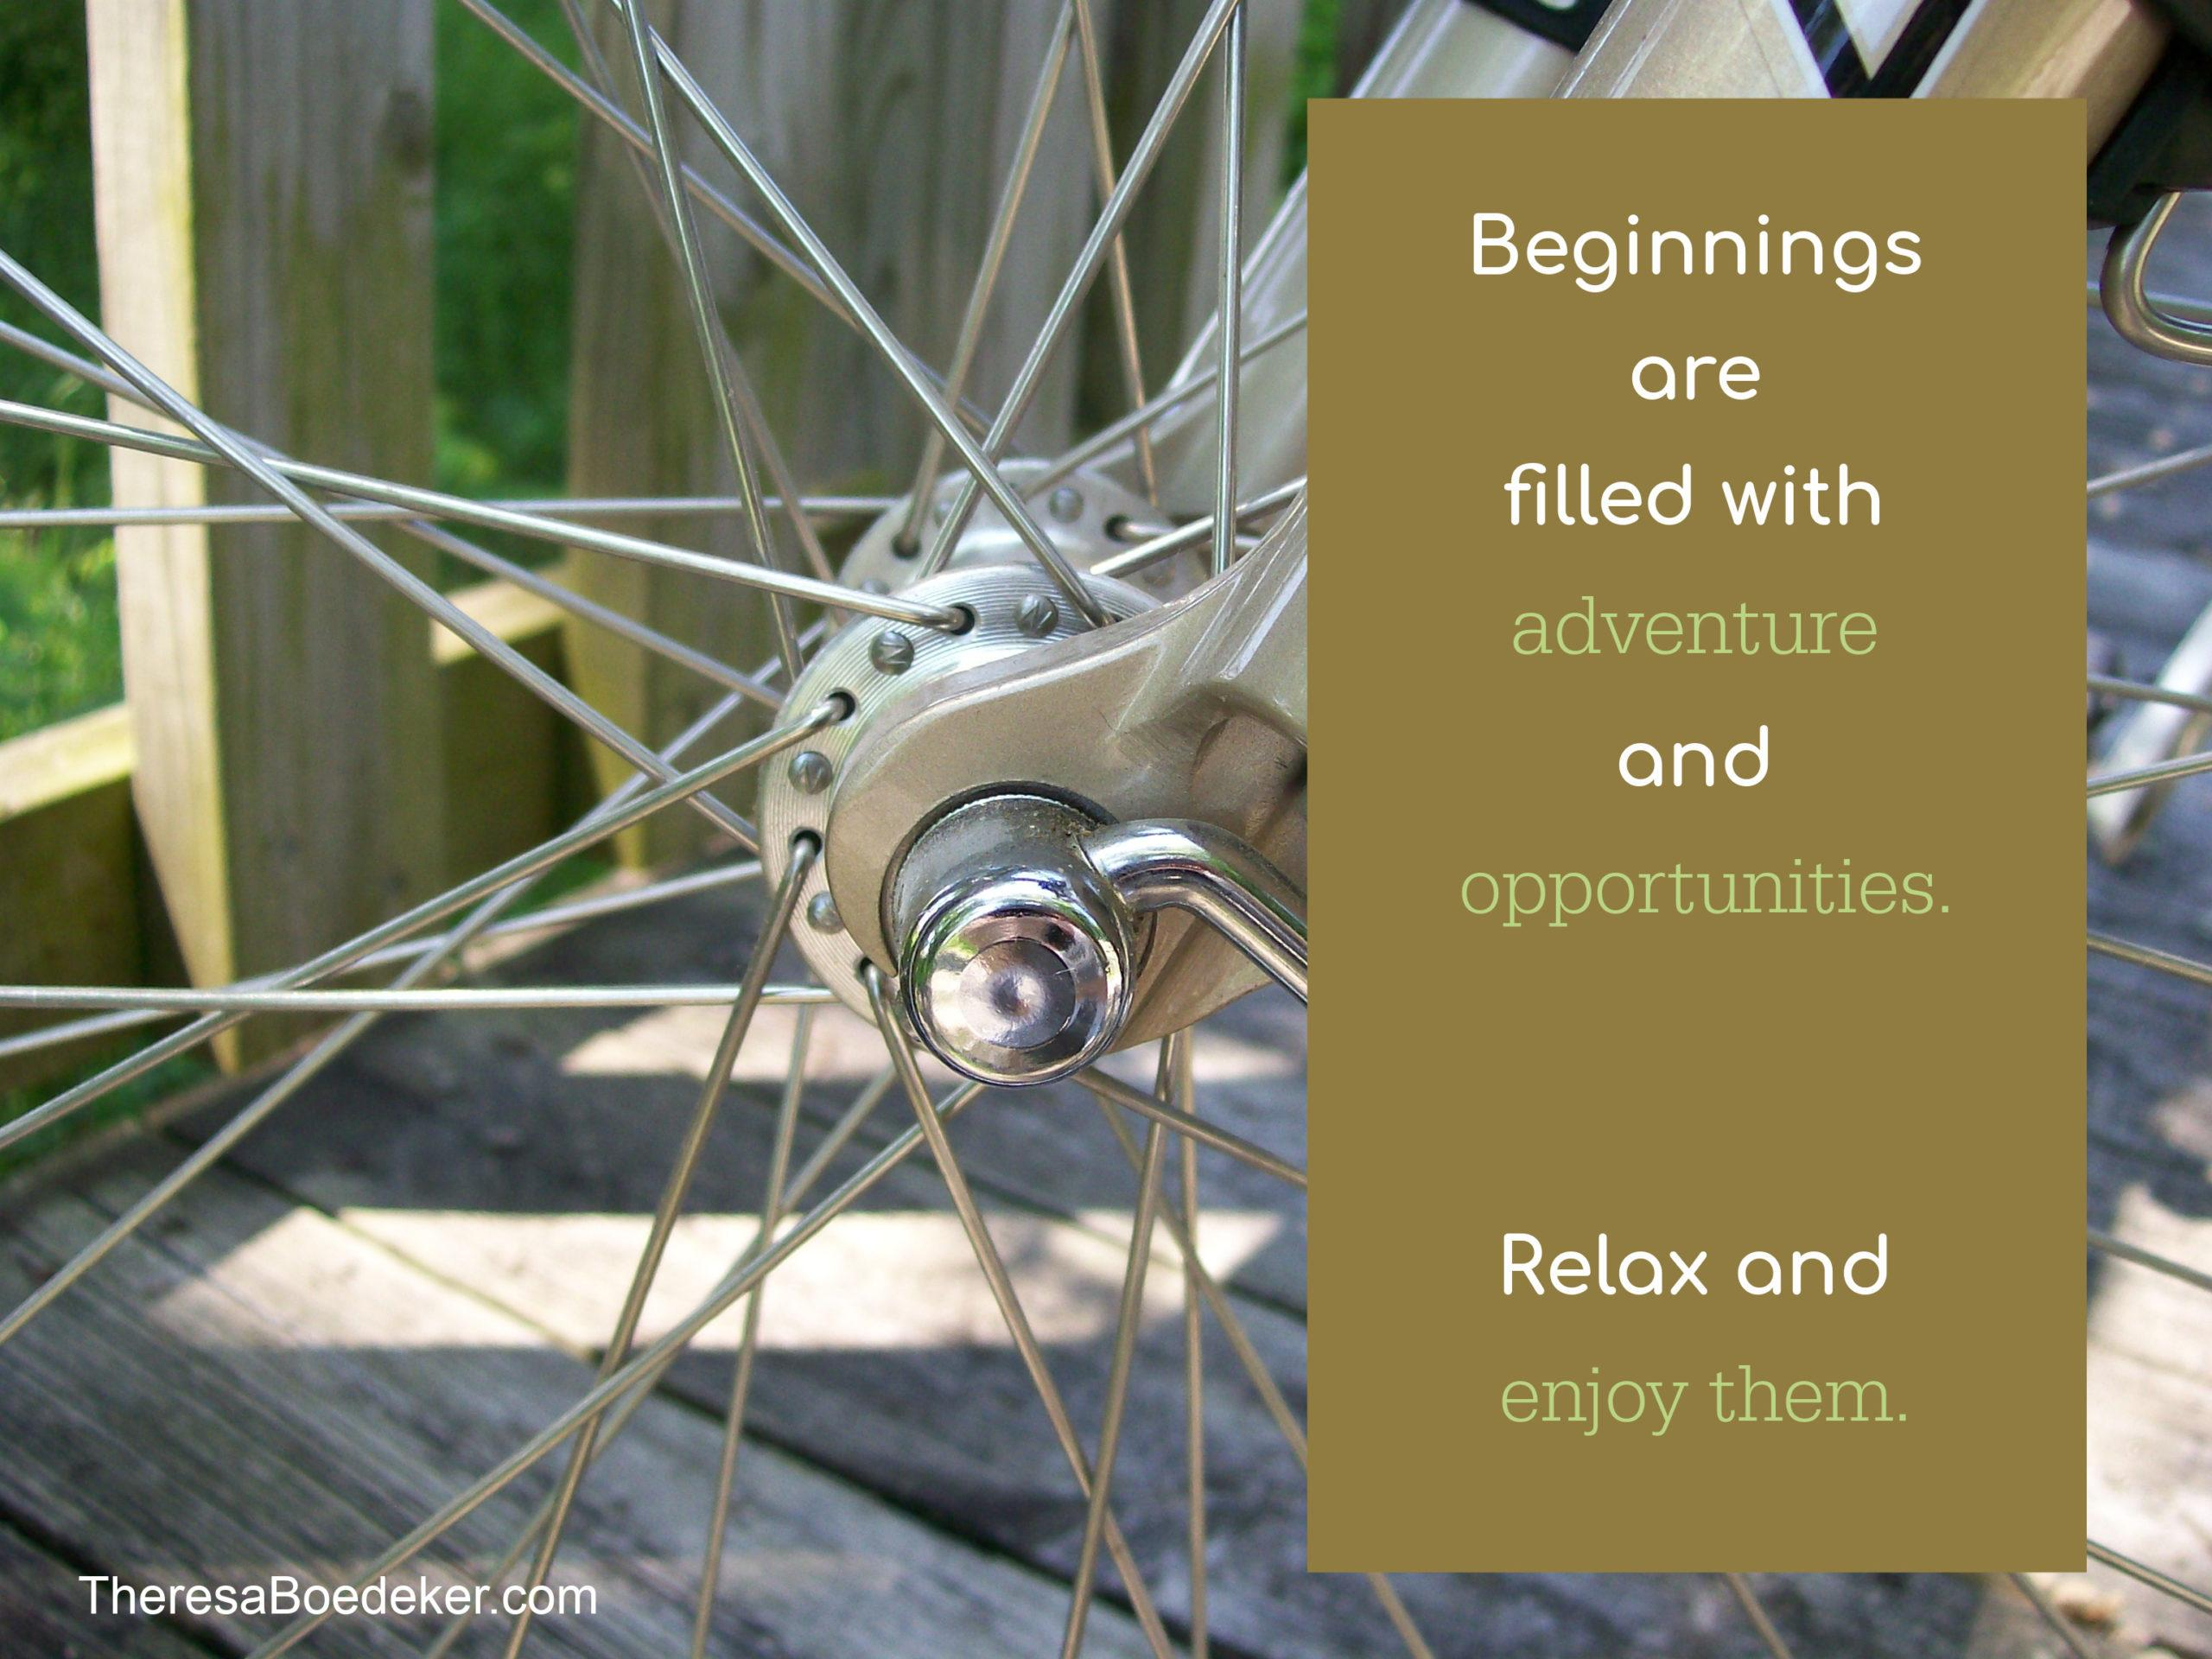 Don't dread being an amateur. Beginnings are filled with adventures and opportunities. Relax and enjoy them.